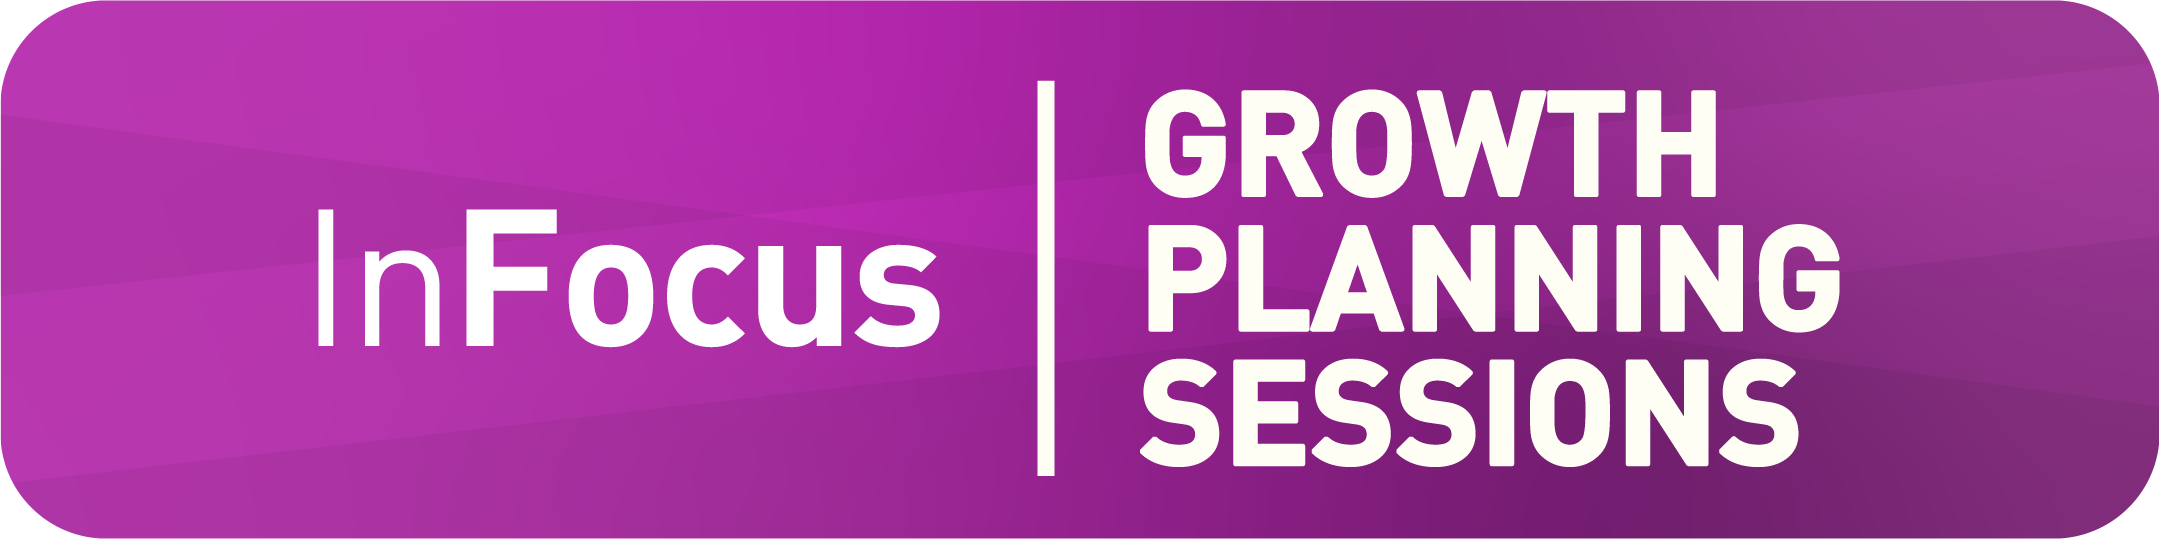 InFocus Growth Planning Sessions on purple background